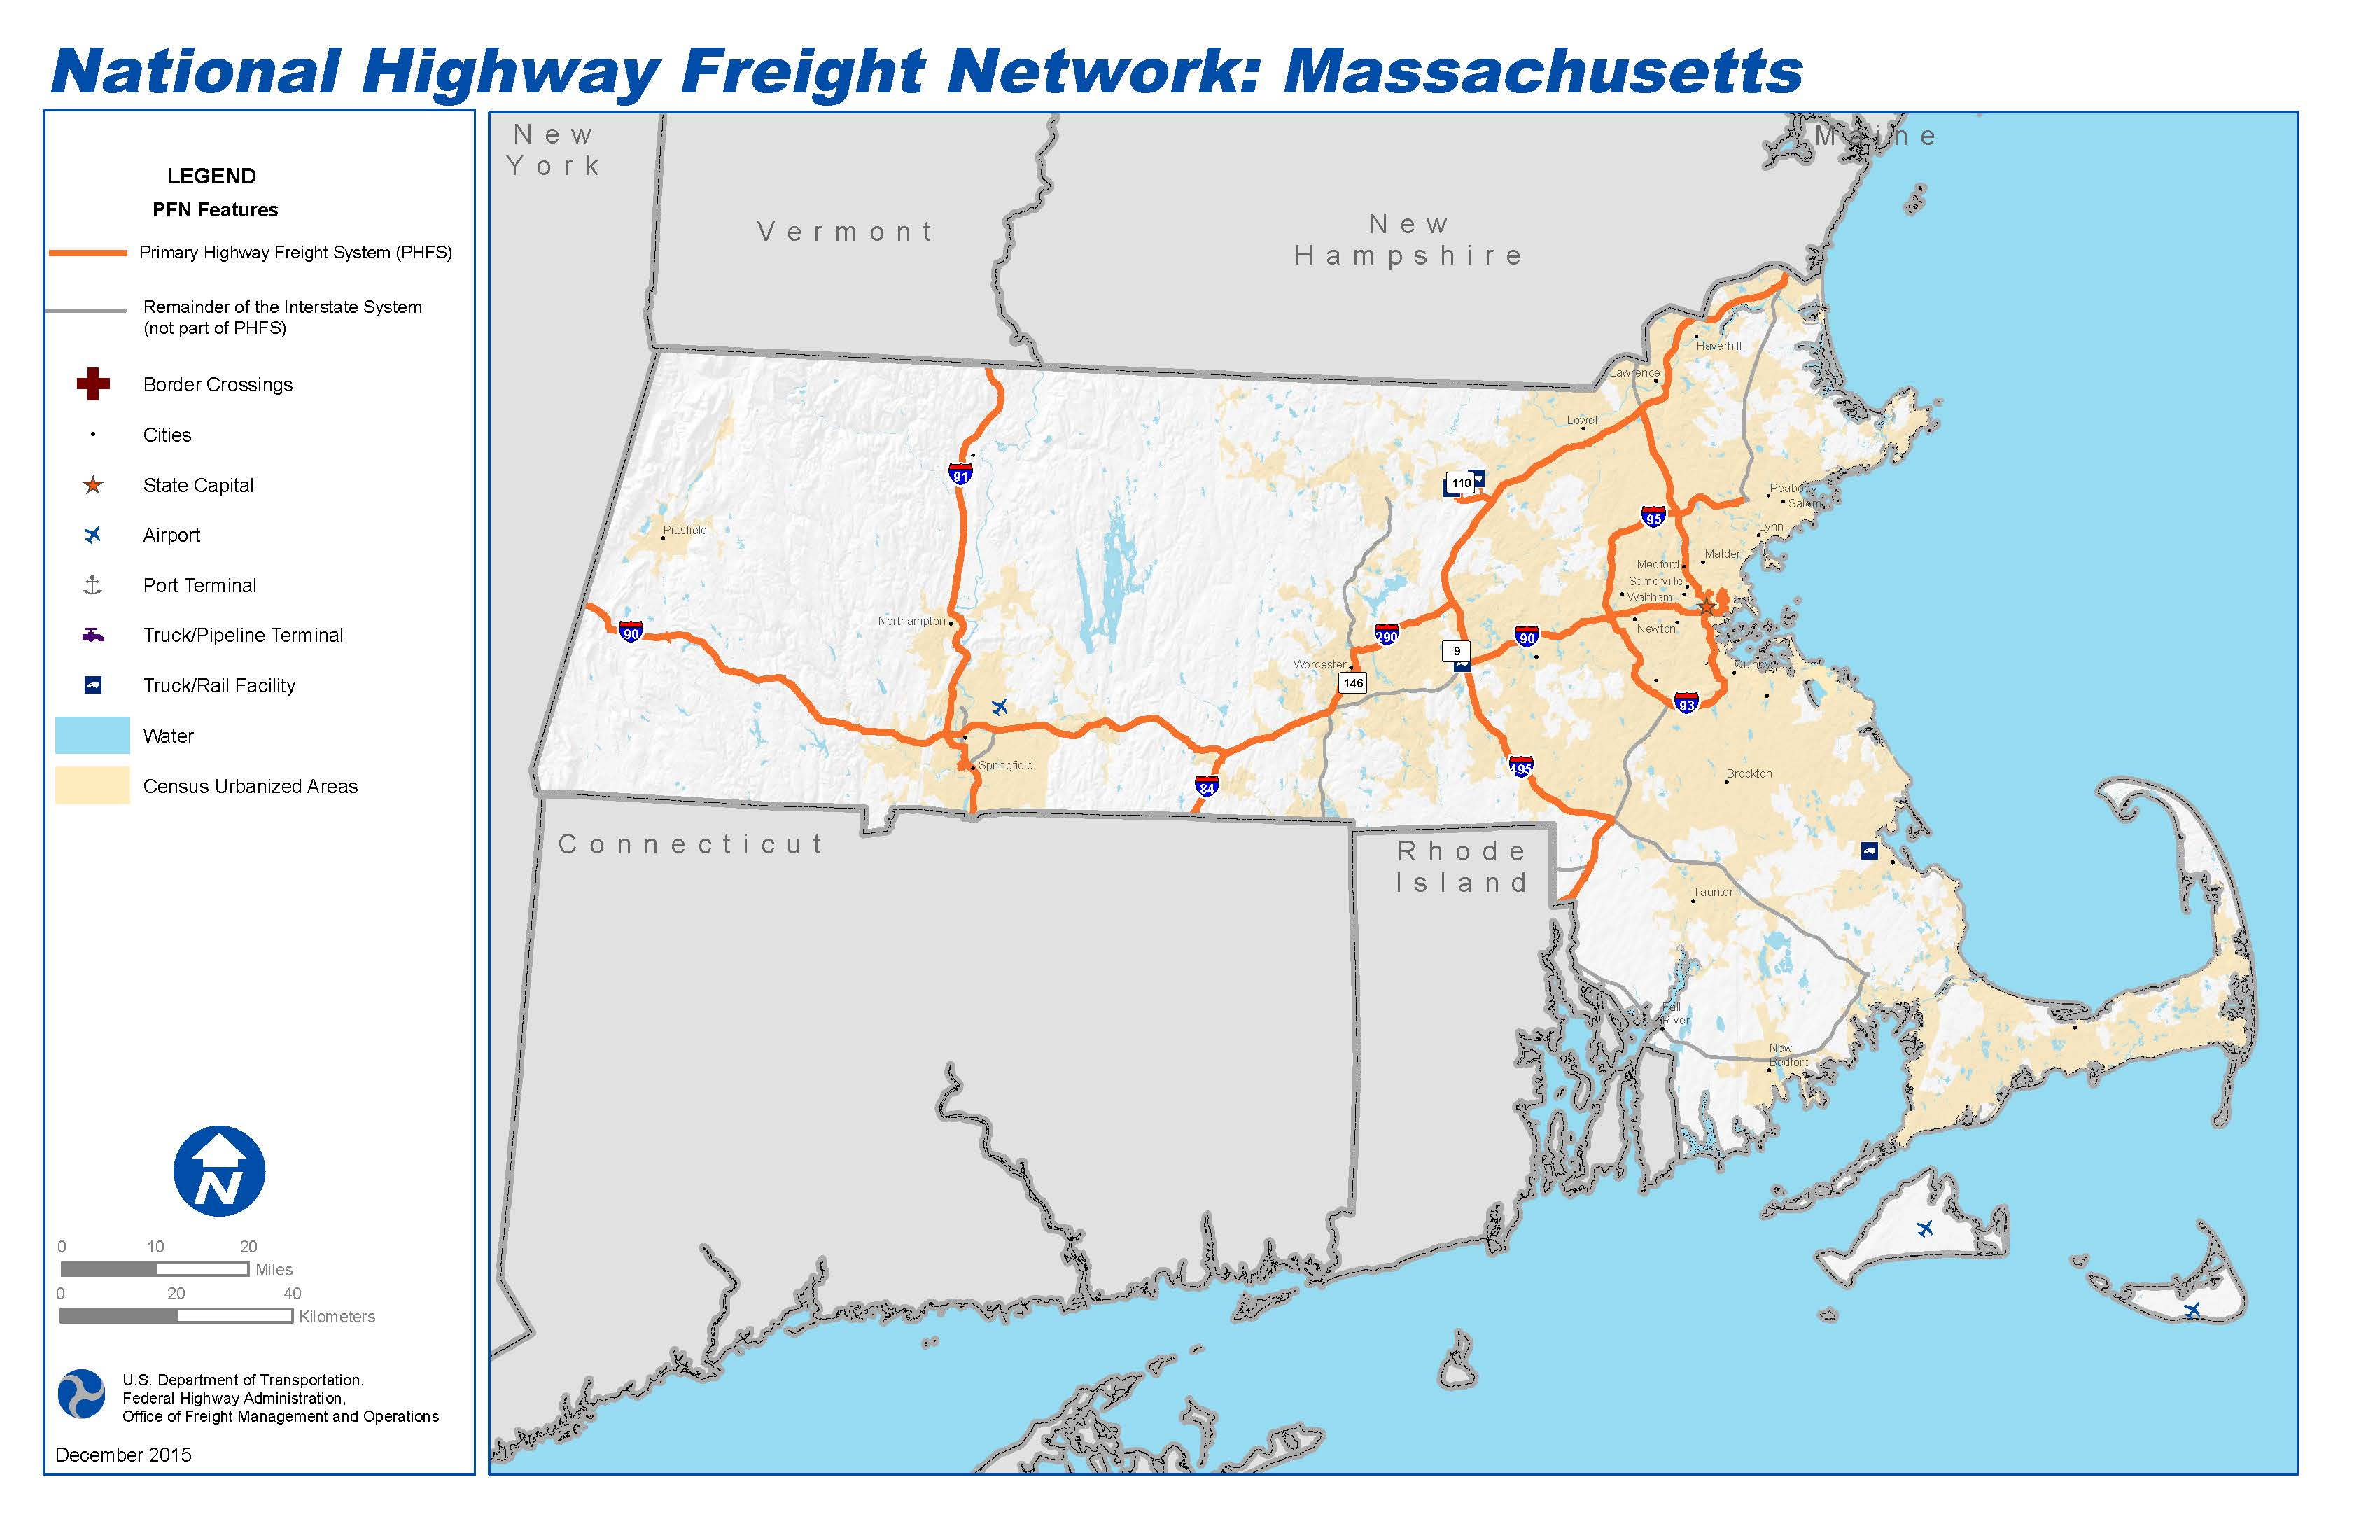 National Highway Freight Network Map and Tables for Massachusetts